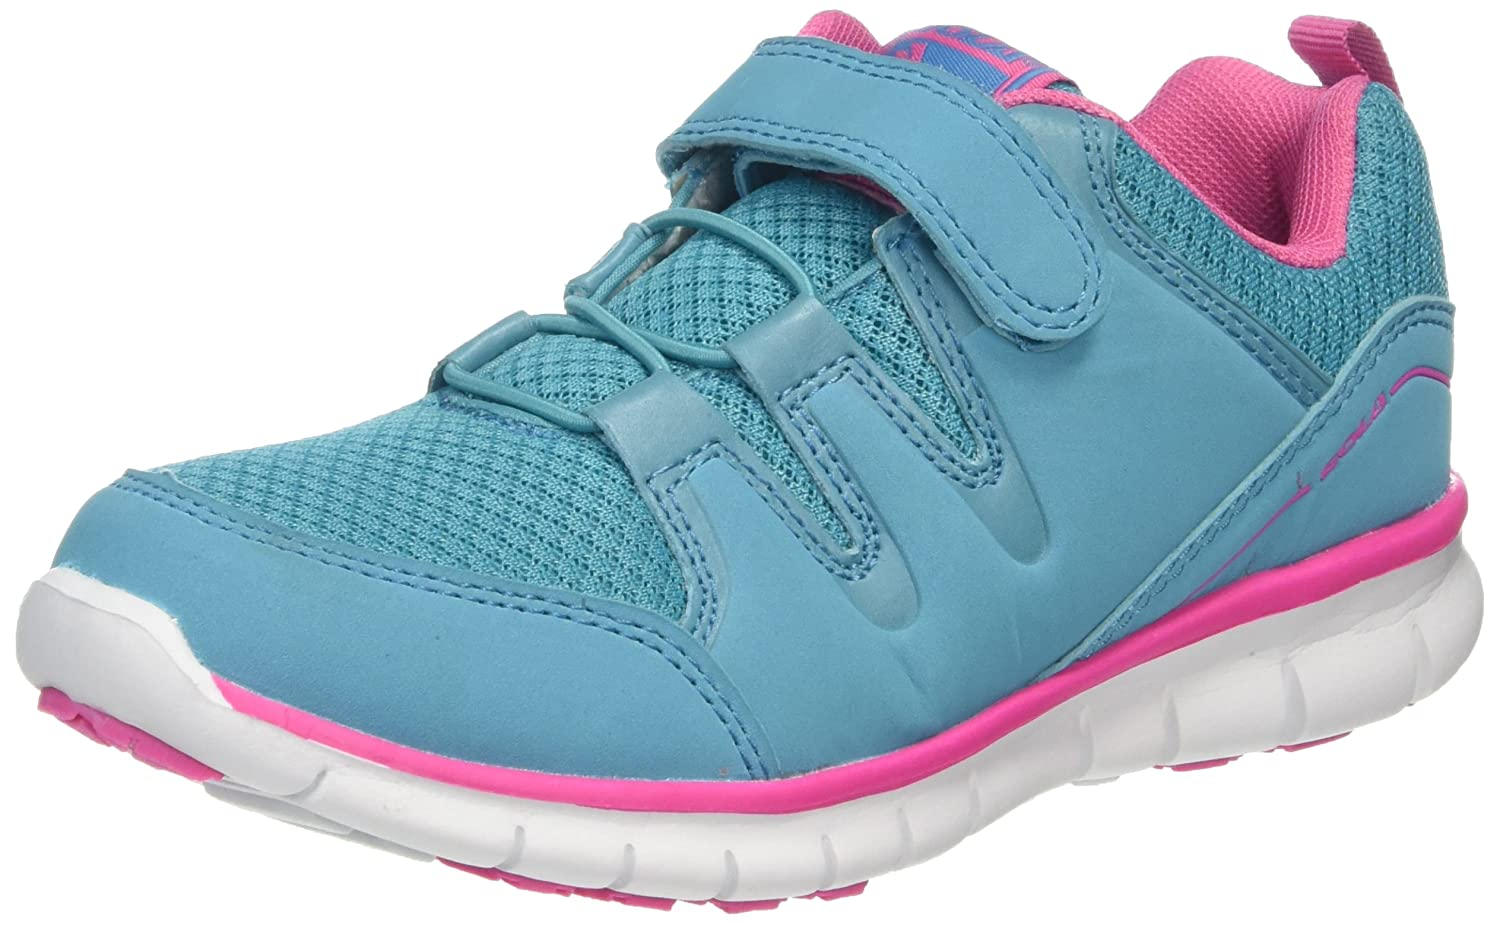 Gola Termas 2, Chaussures Multisport Outdoor Fille